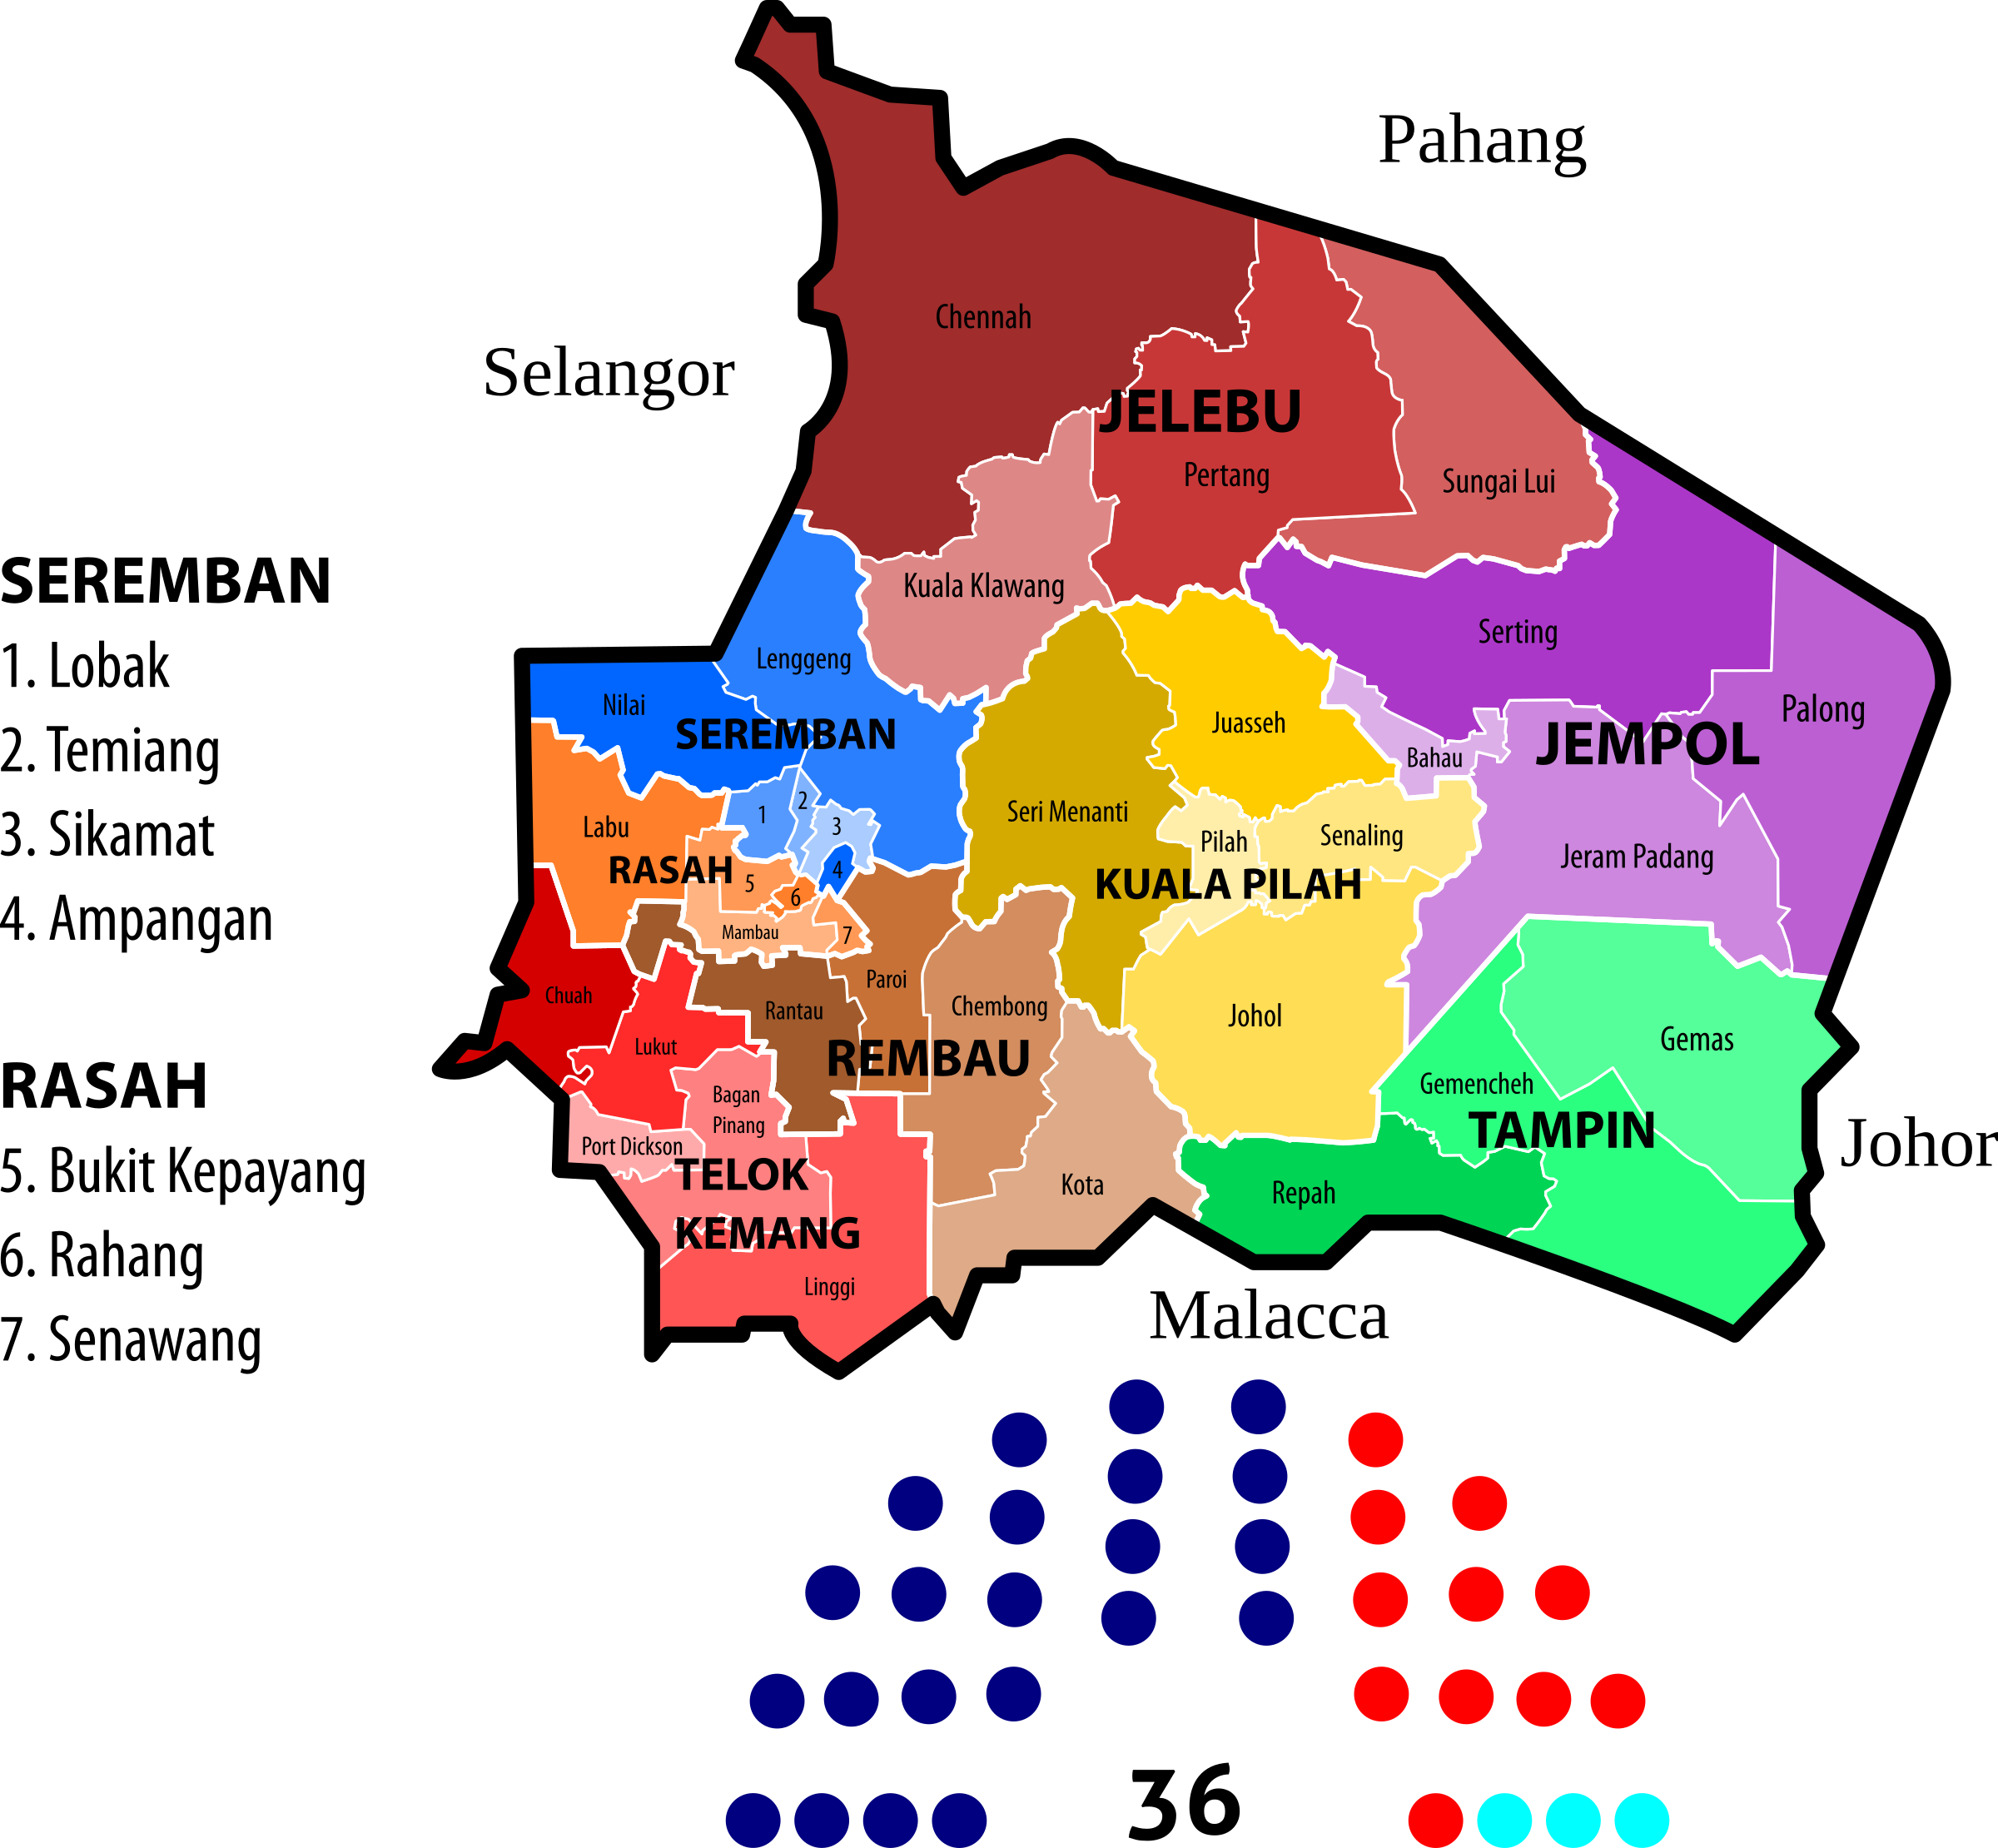 Negeri Sembilan State Legislative Assembly Constituencies (2013) by derkommander0916